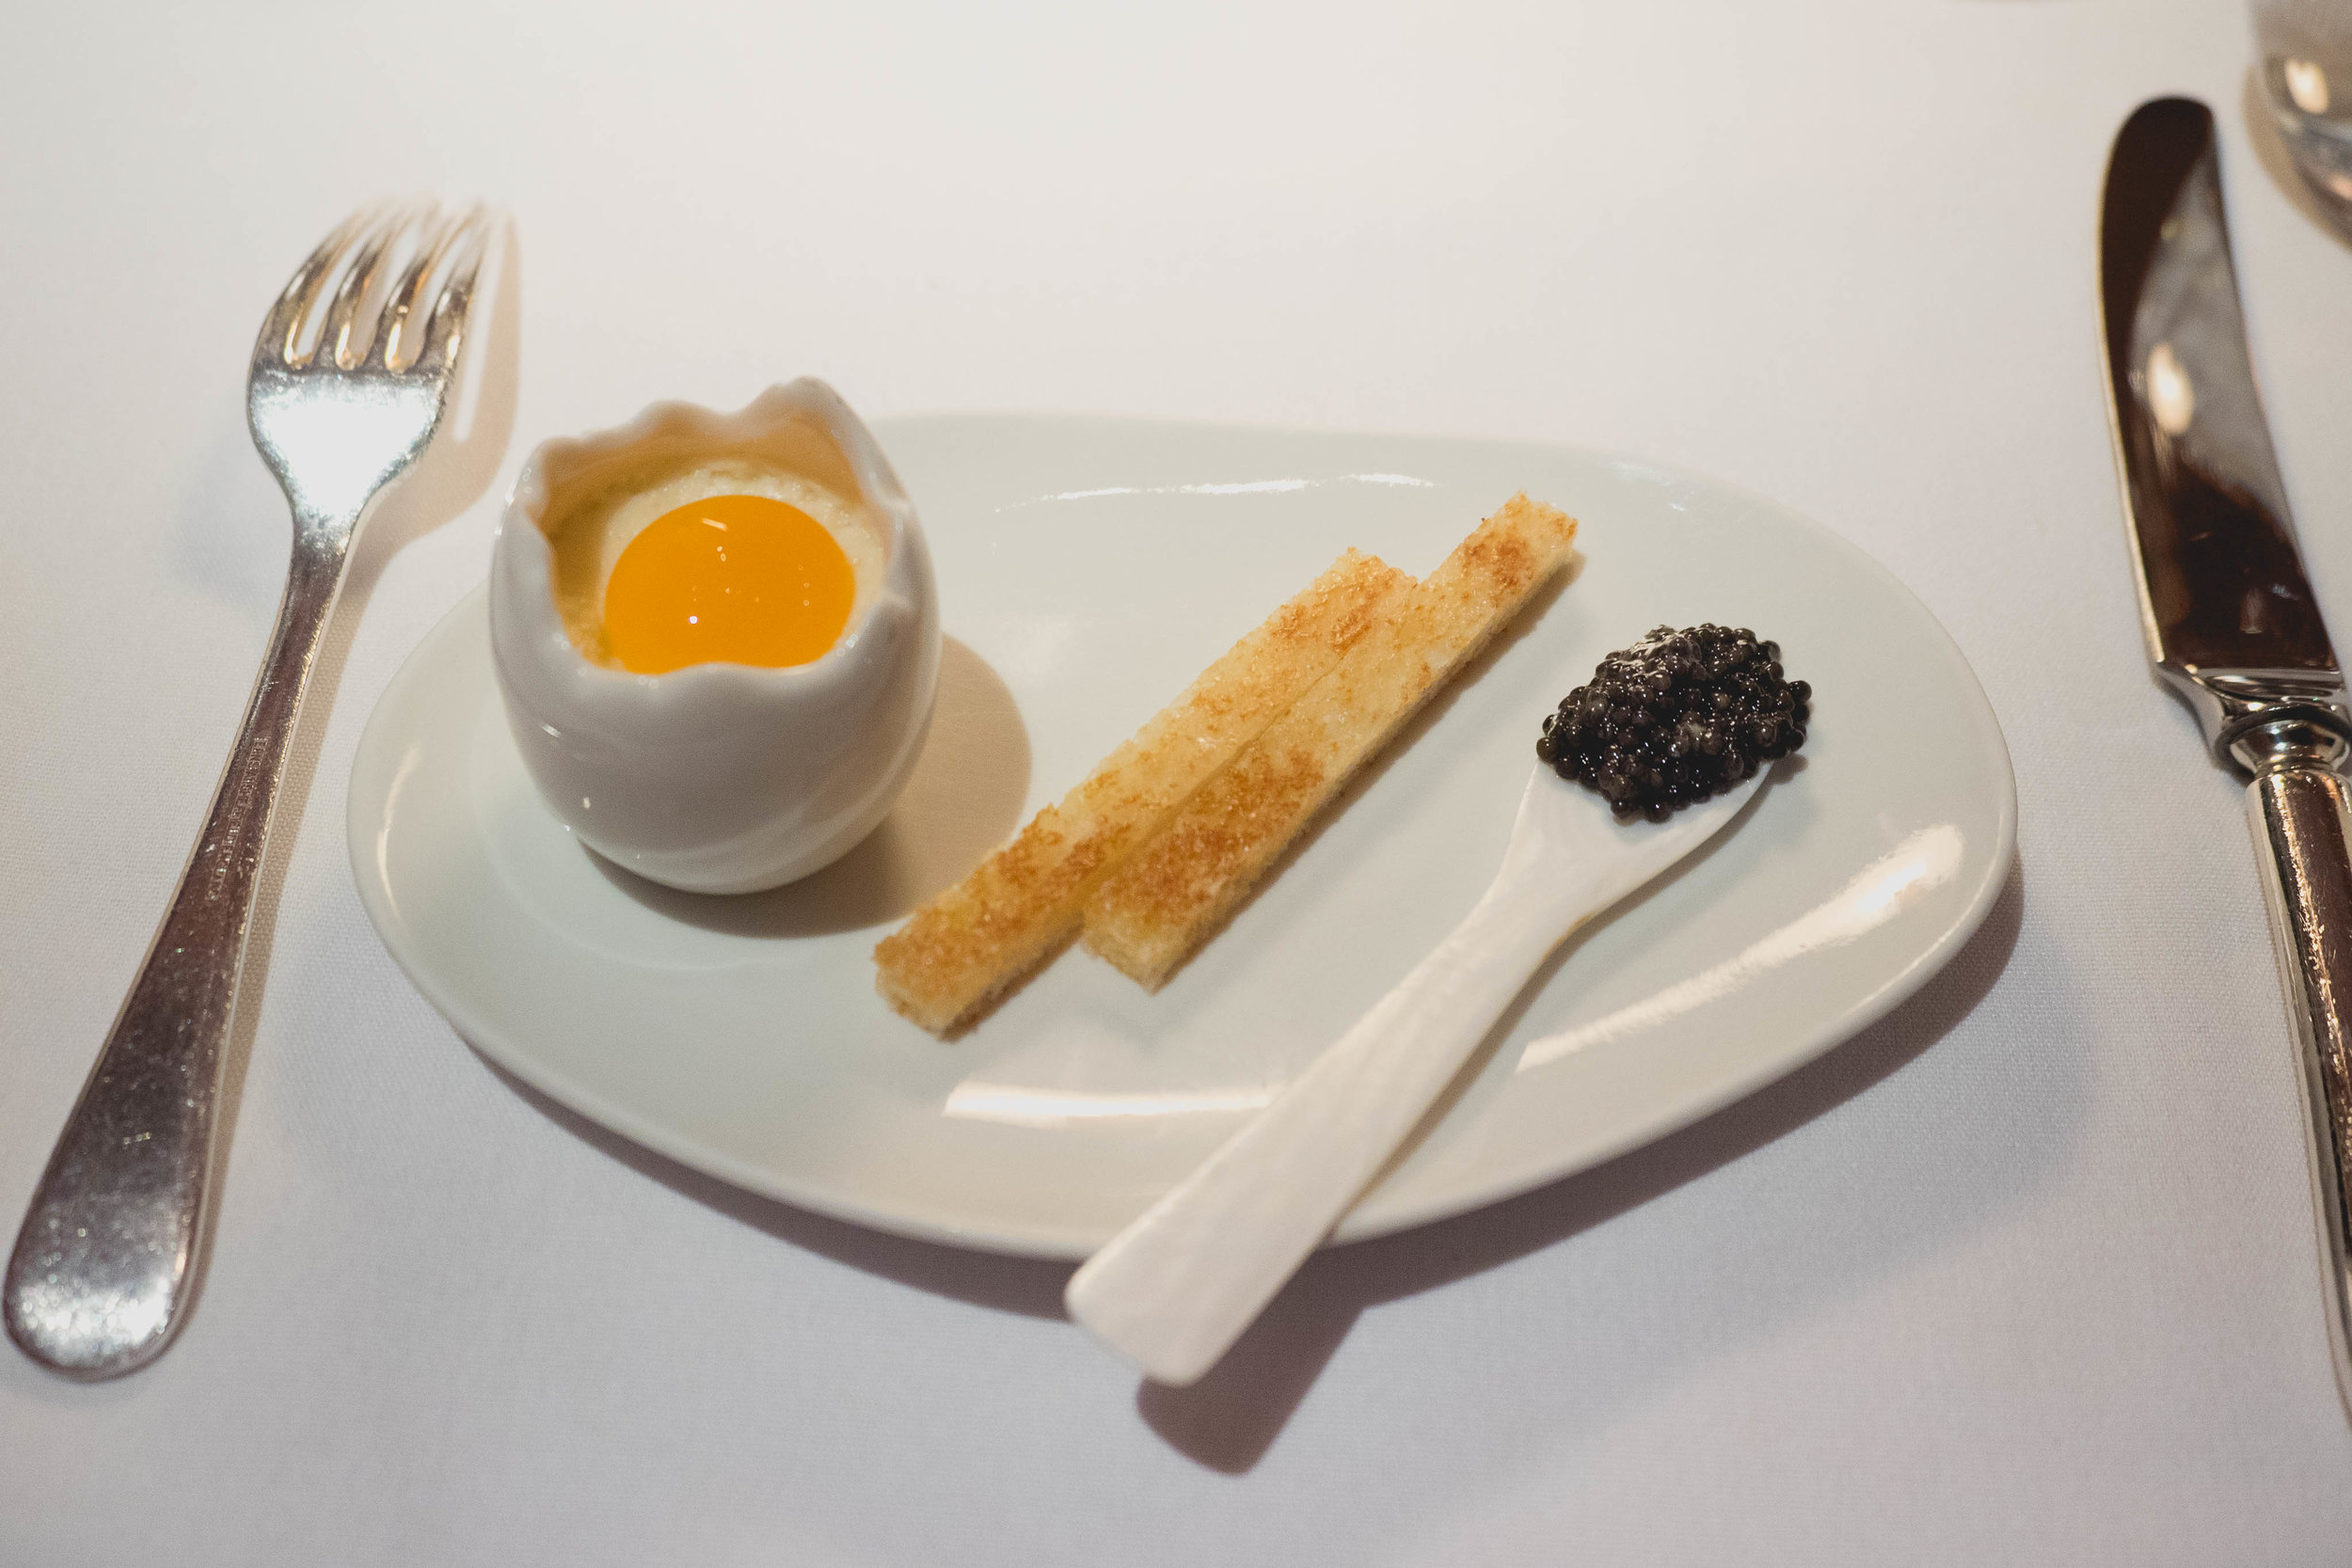 eggs and soldiers : comte cheese mornay, 63 degree egg yolk, comte cheese soldiers, sturgeon caviar.